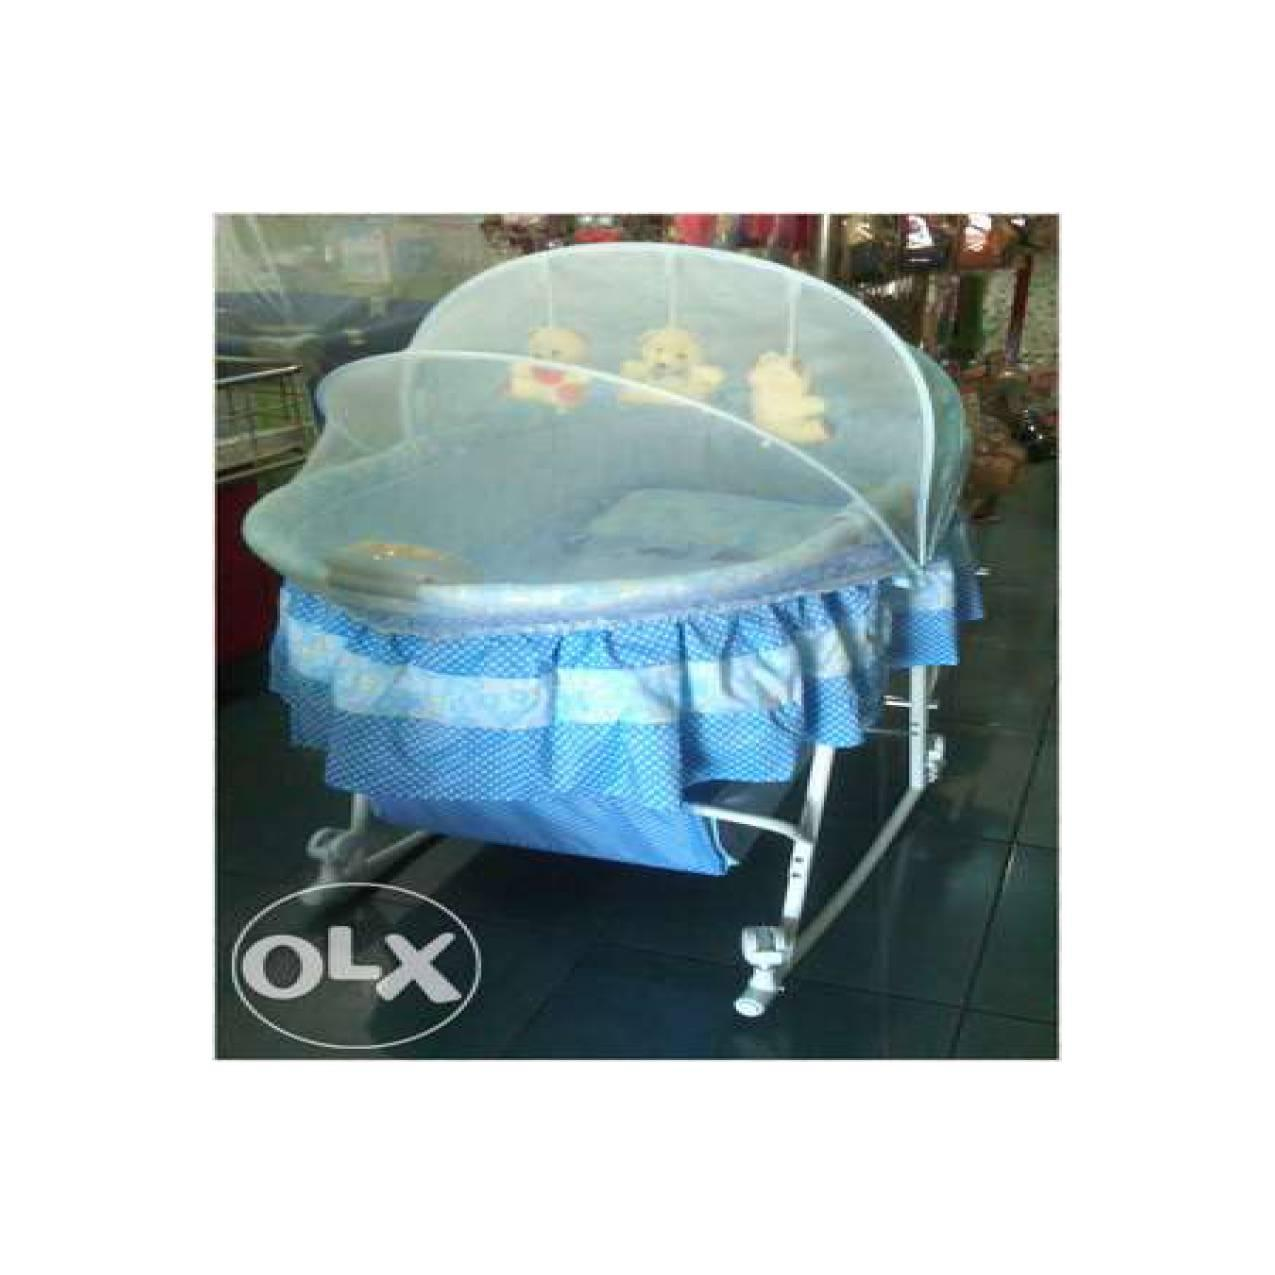 Buy Sell Cheapest Box Pliko Baby Best Quality Product Deals Tempat Ranjang Tidur Bayi 1178 Lr Bed 608 A